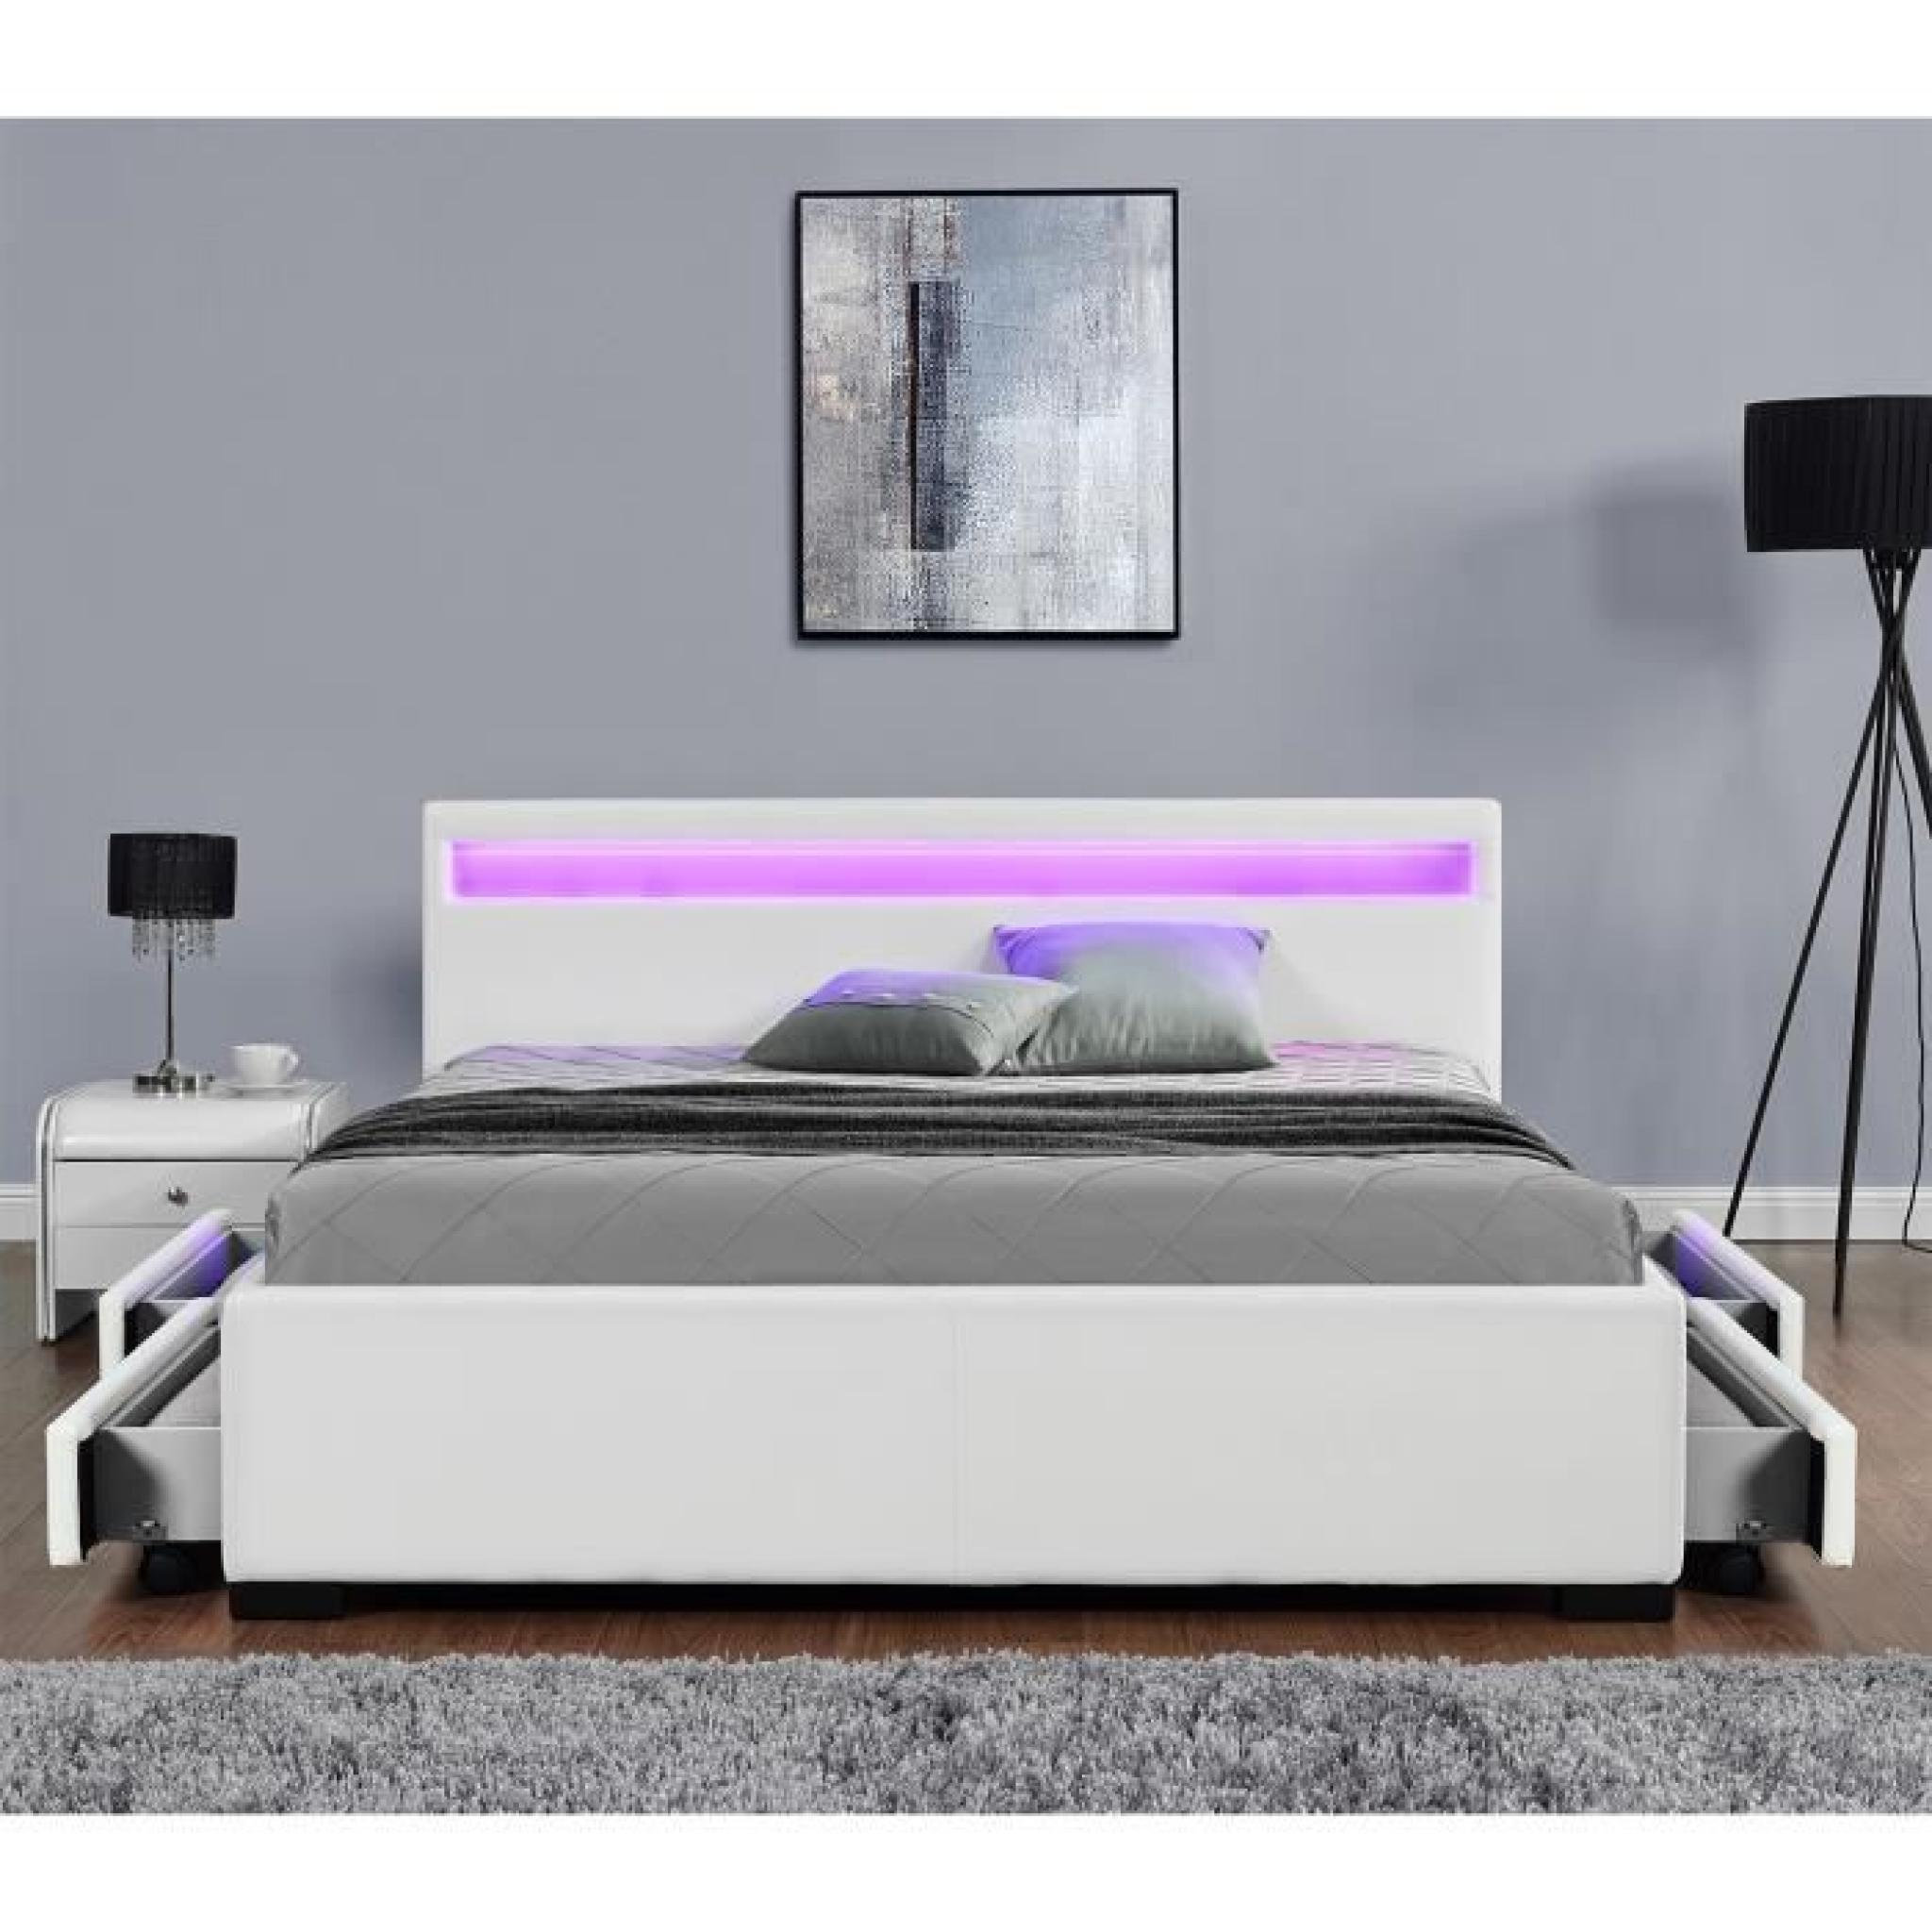 lit enfield blanc led et rangements tiroirs 140x190 cm achat vente lit pas cher couleur. Black Bedroom Furniture Sets. Home Design Ideas